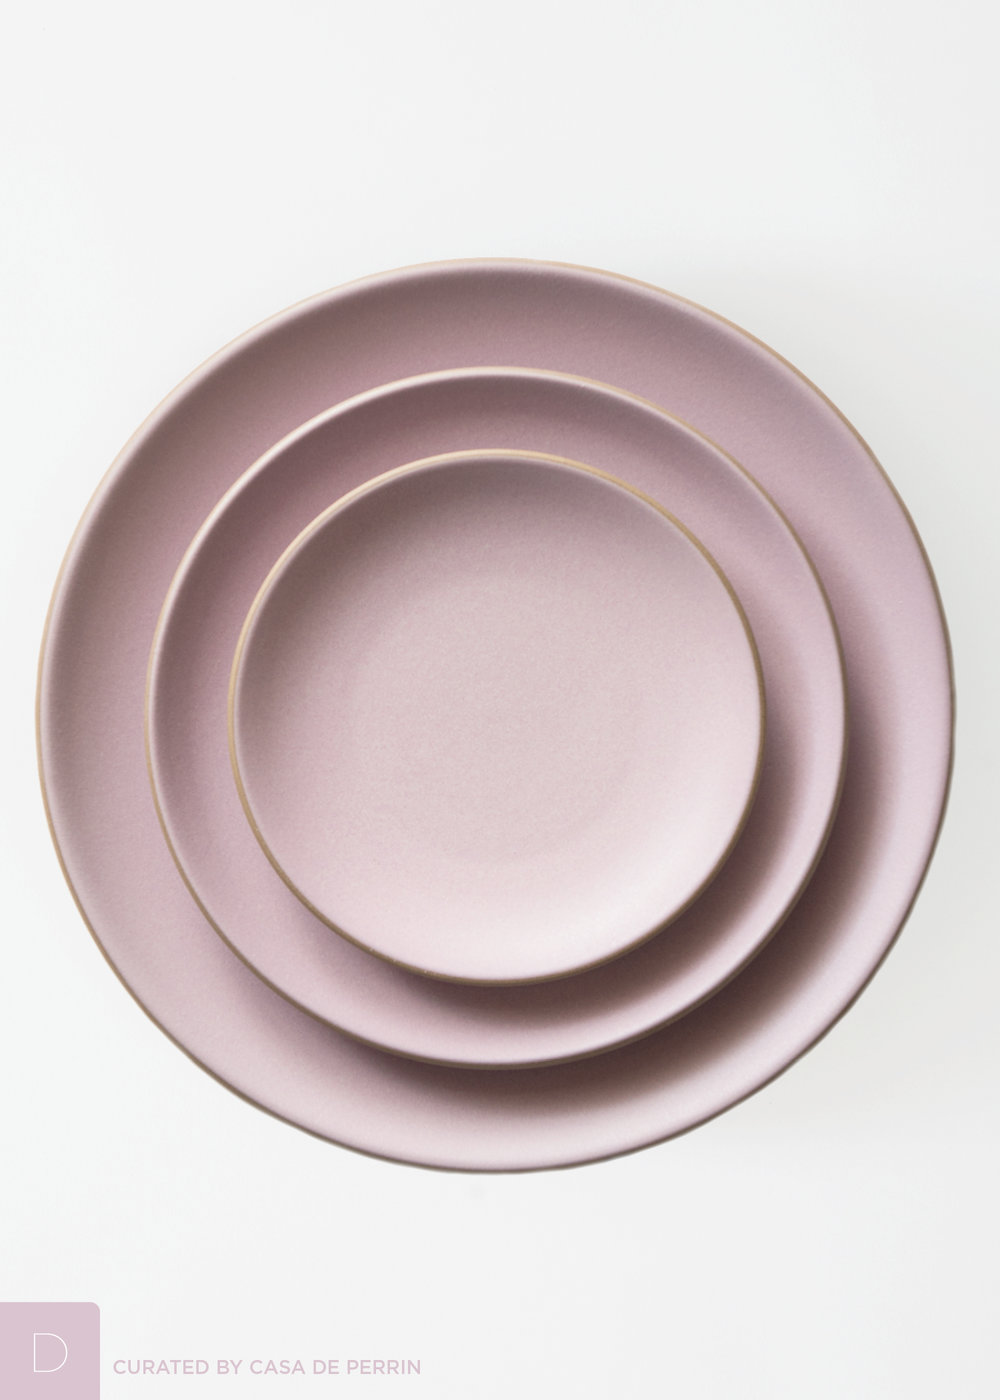 HEATH CERAMICS | WILDFLOWER : ceramics tableware - pezcame.com